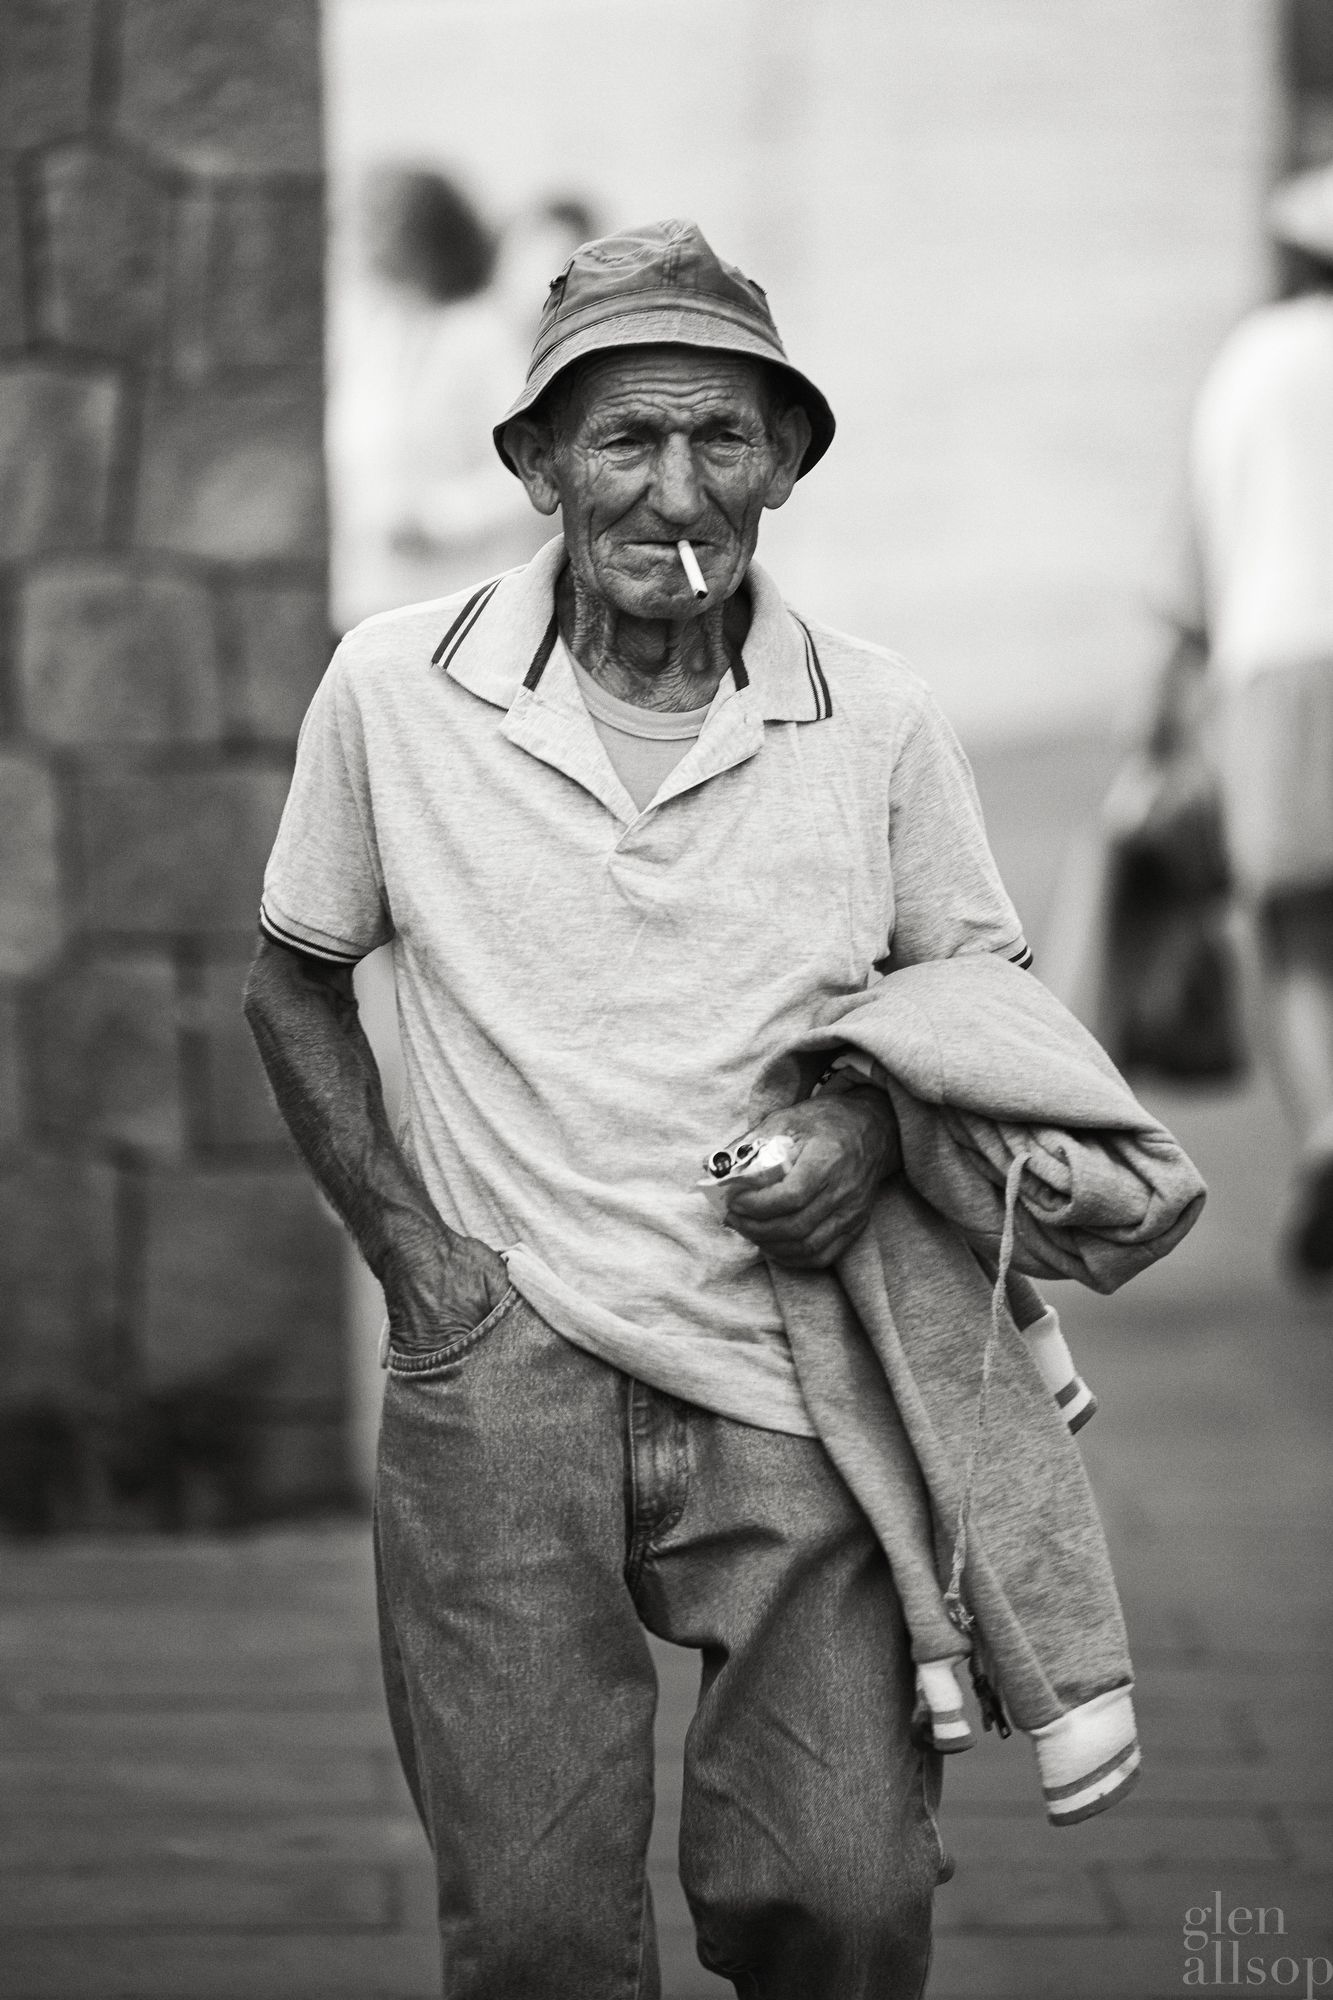 on the street-ischia-portrait-black and white-sea-weathered face-fisherman-bucket hat